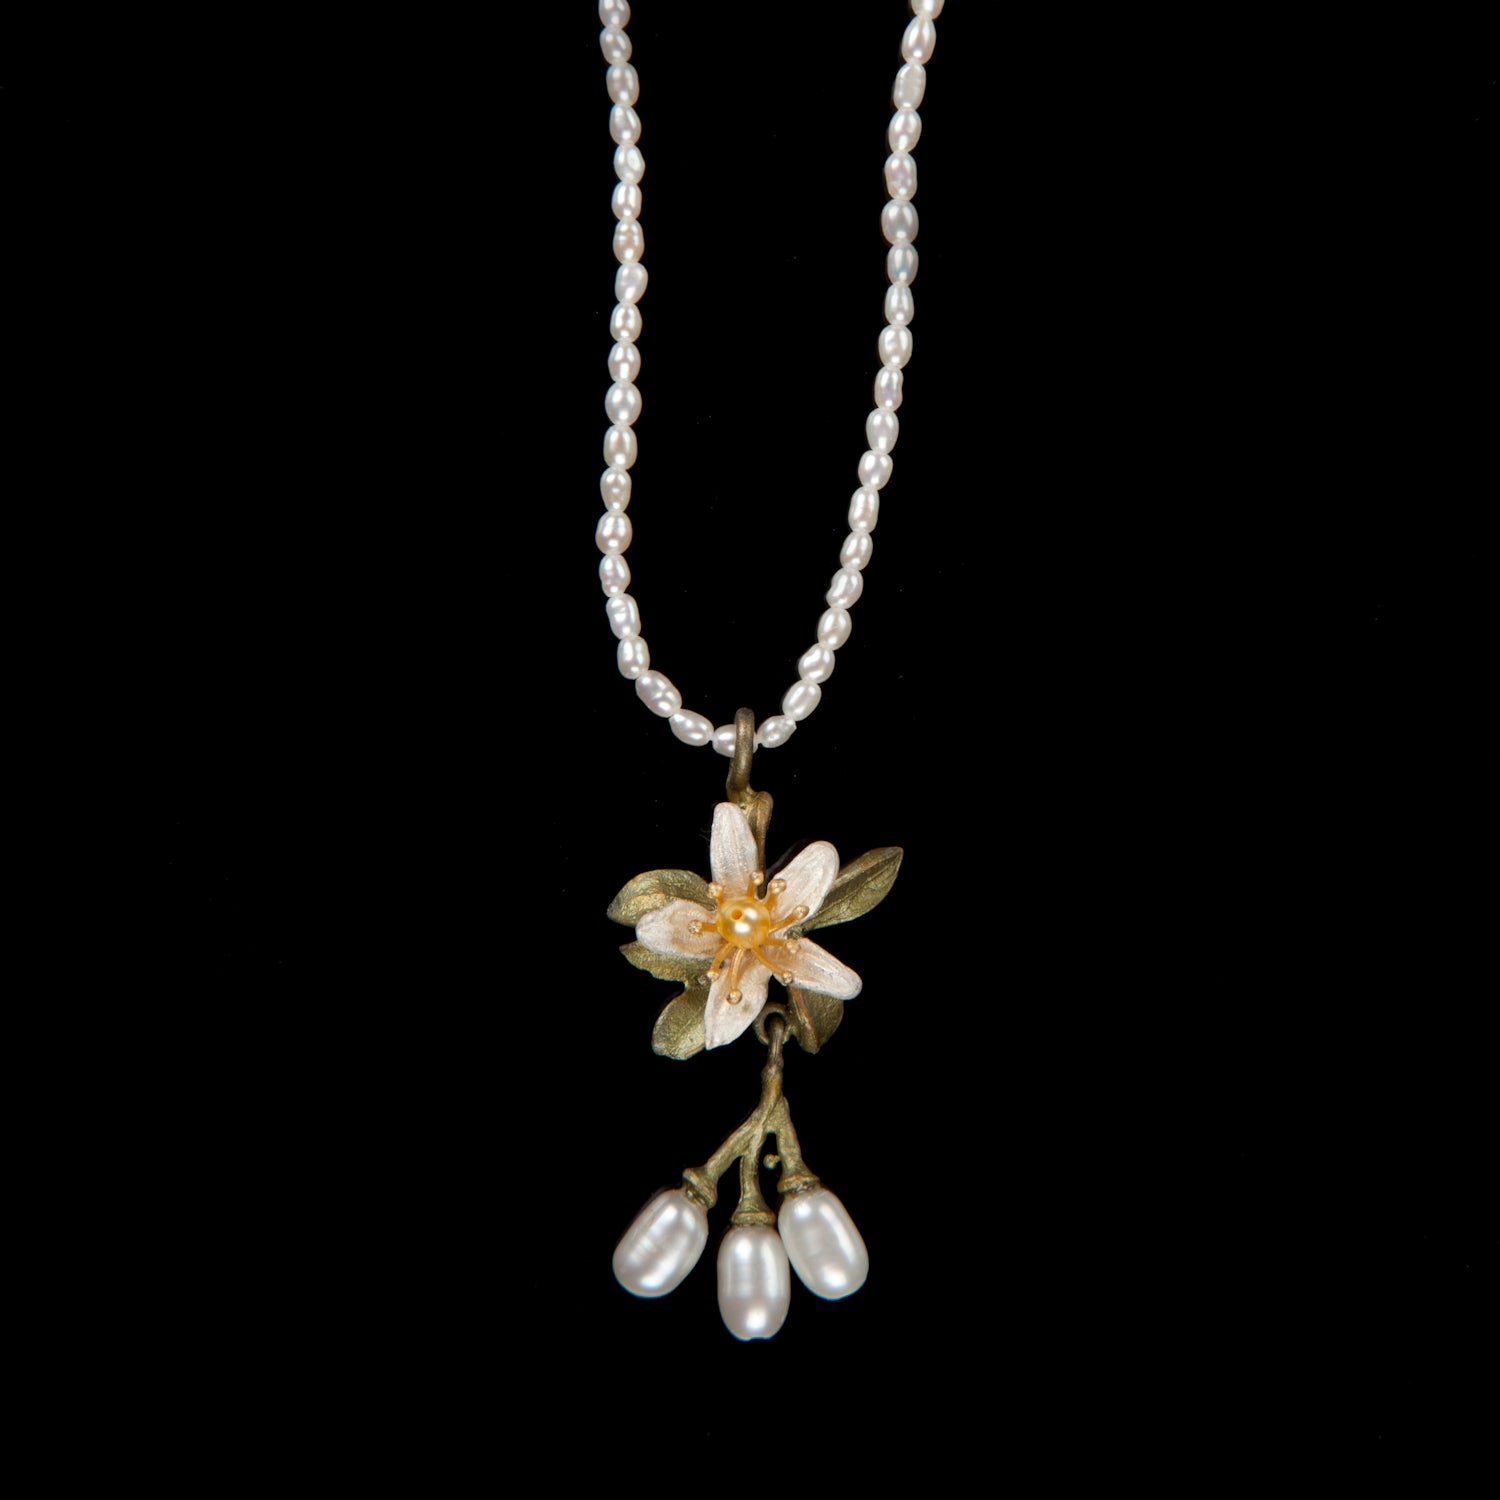 Orange Blossom Pendant - Flower Pearls